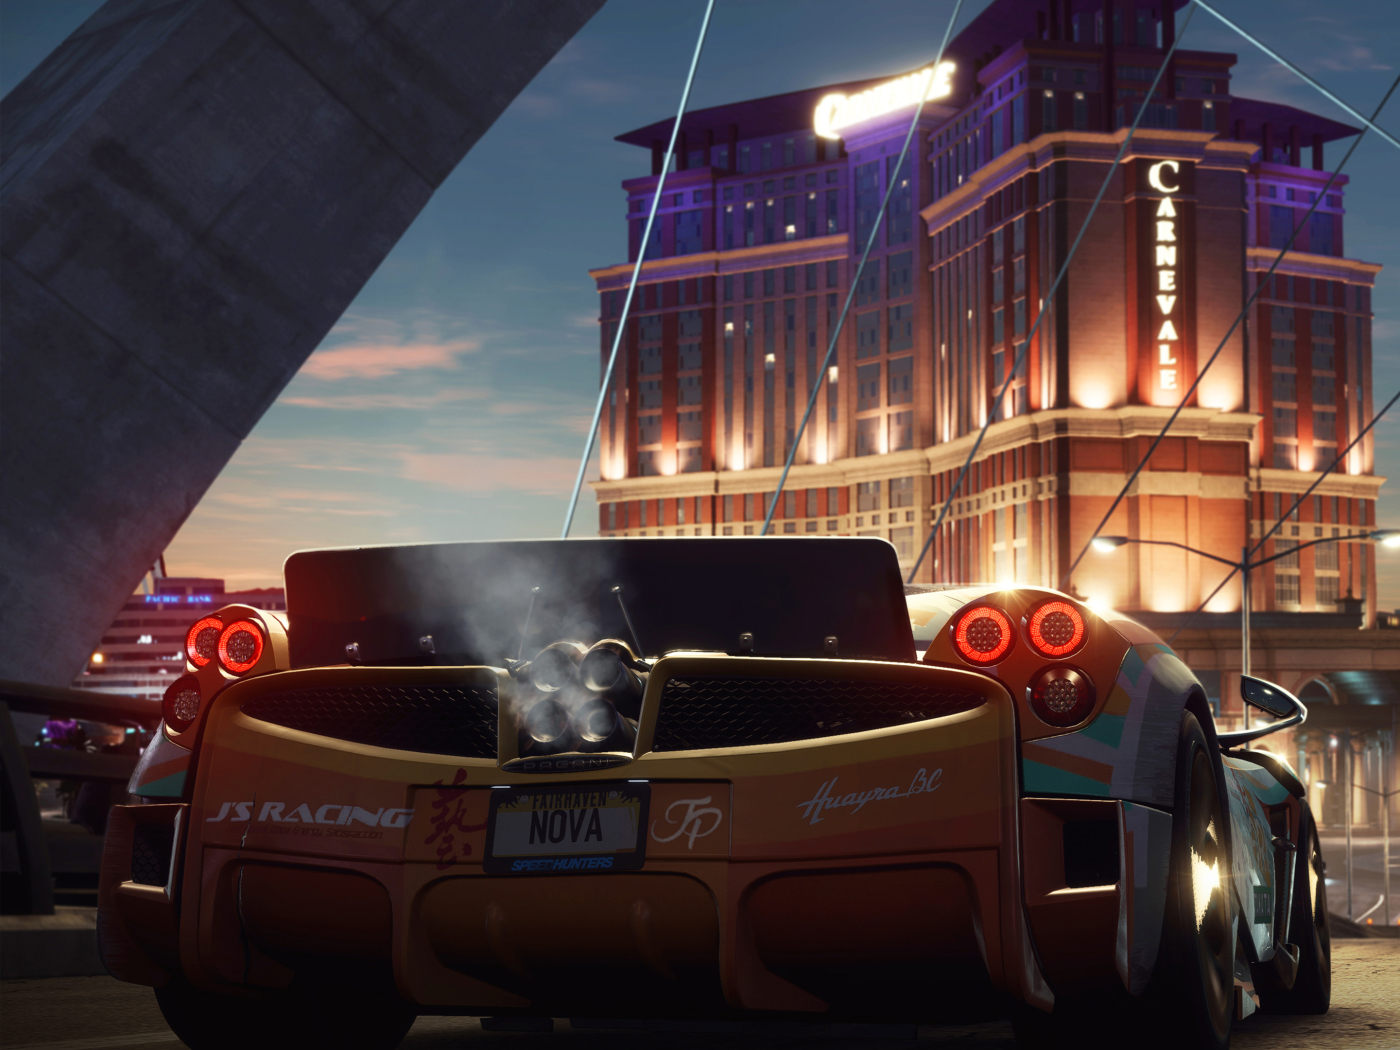 1400x1050 Need For Speed Payback Pc 2017 1400x1050 Resolution